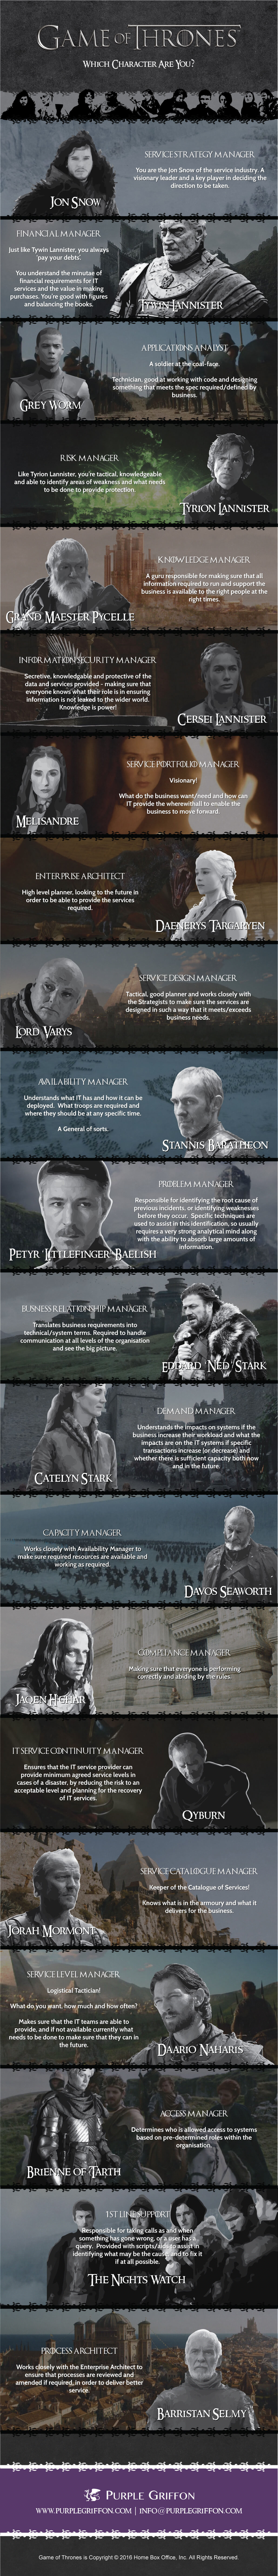 Game of Thrones IT Job Roles [Infographic]